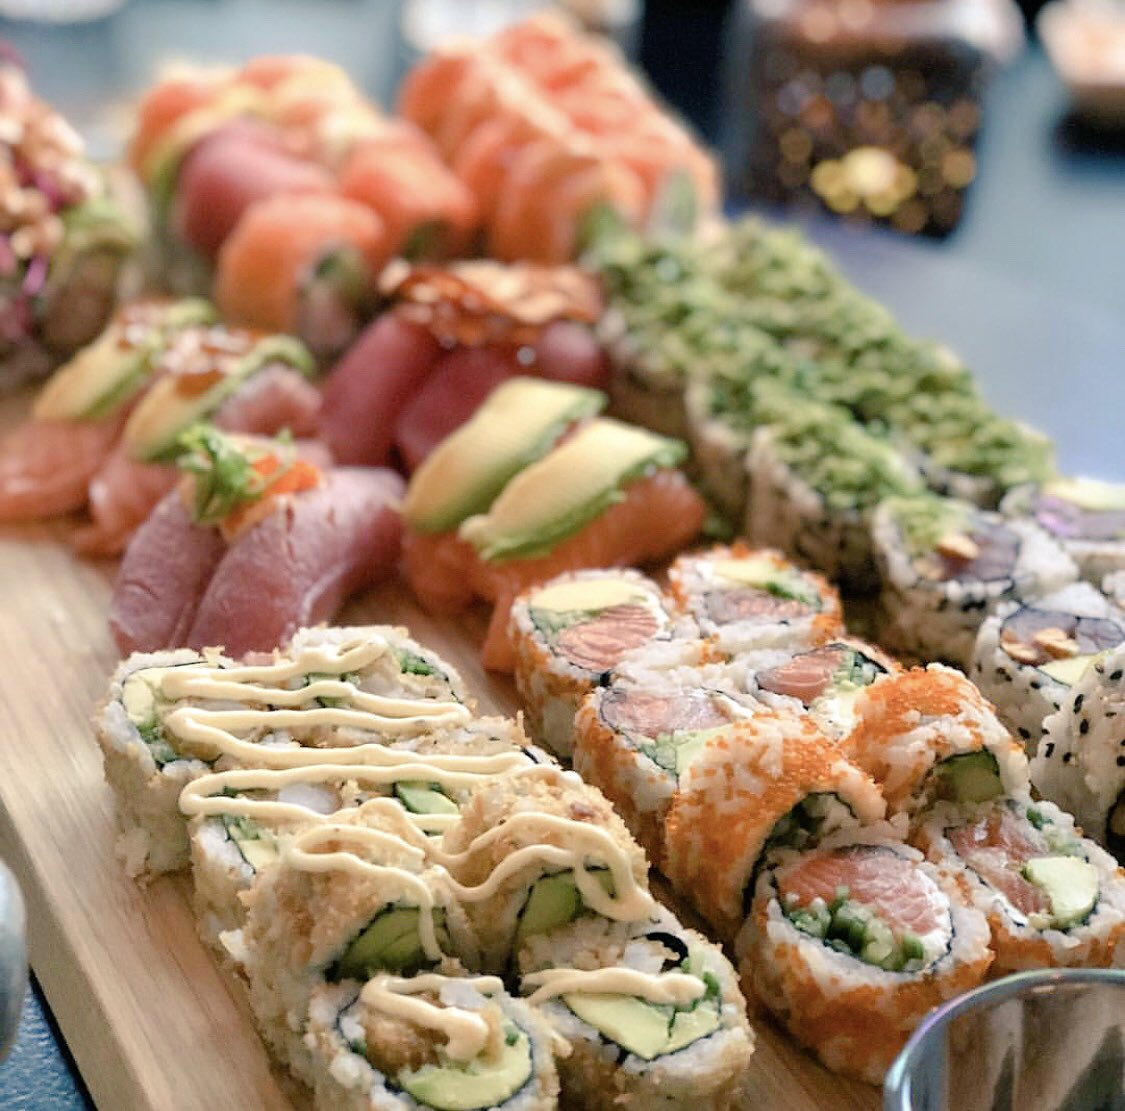 Sushi Mood on Saturday Night   #food #foodie #sushi #sushilovers #sushishop #satyrdaynight<br>http://pic.twitter.com/EScxfaic2w